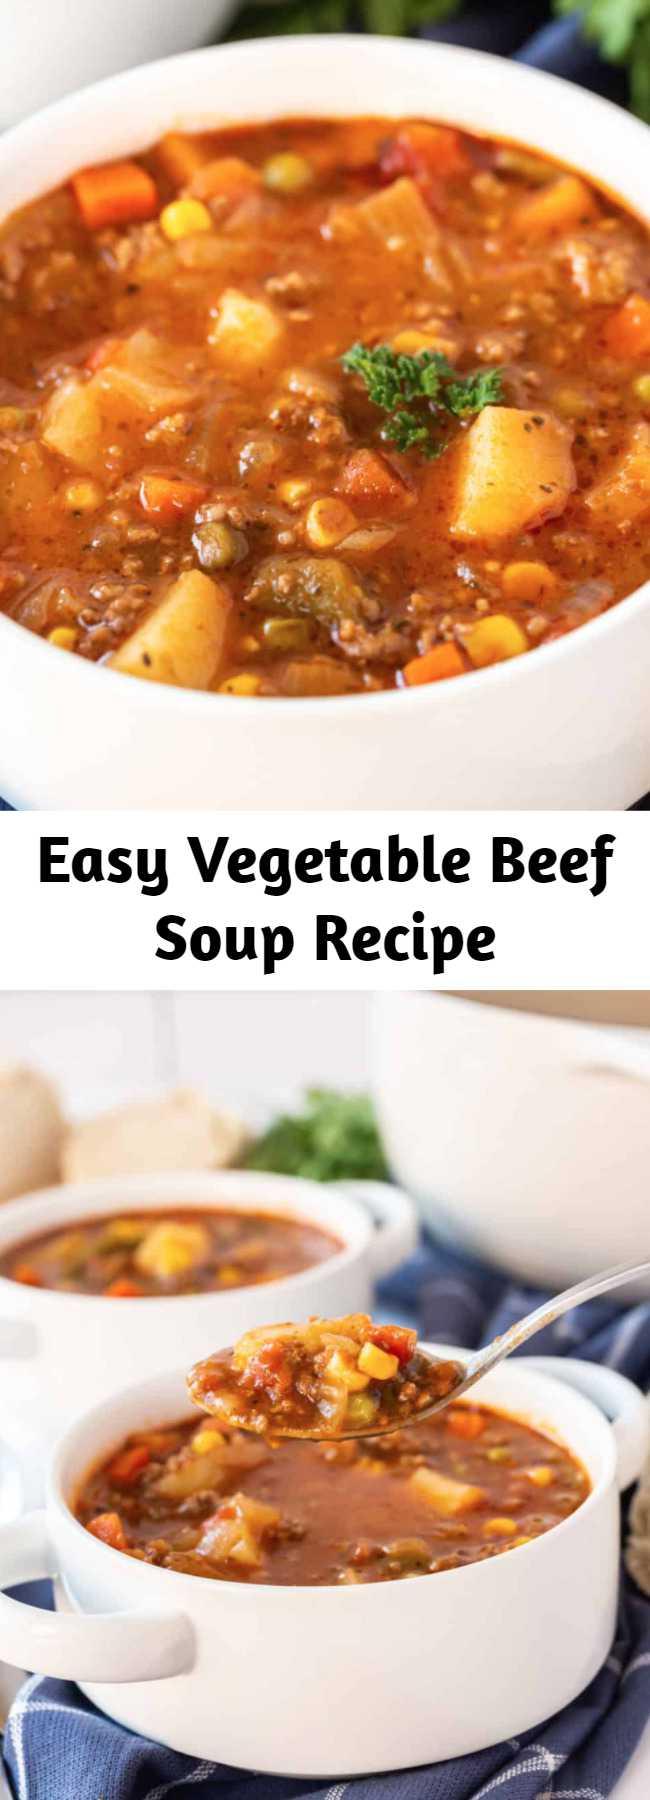 Easy Vegetable Beef Soup Recipe - When it comes to comfort this Vegetable Beef Soup is where it's at. With a short list of ingredients this easy soup is delicious, hearty and satisfies the family! #soup #beef #hearty #recipes #delicious #recipe #tasty #easyrecipe